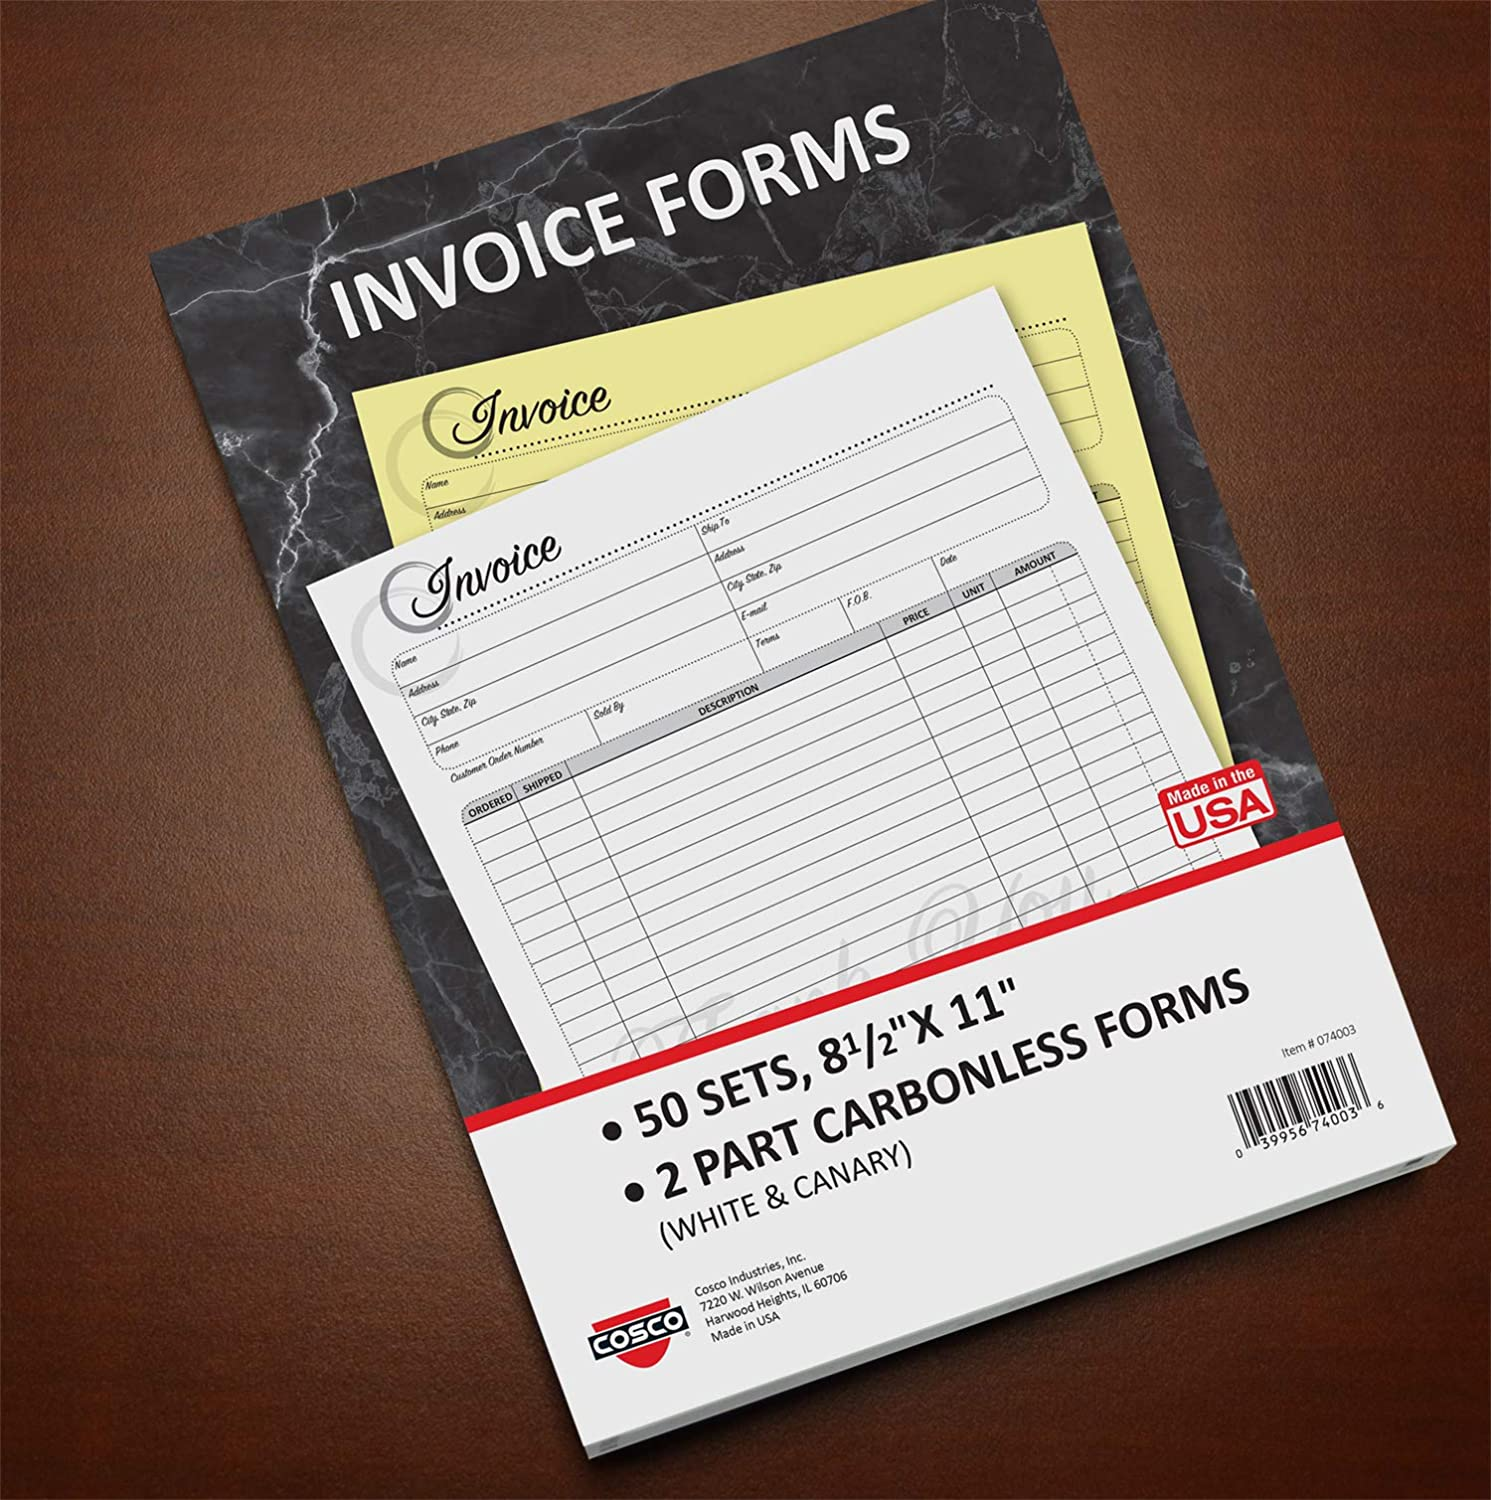 Lowest price challenge Cosco Invoice Form Book with Slip Artistic 8 Popular overseas 2-Par 11